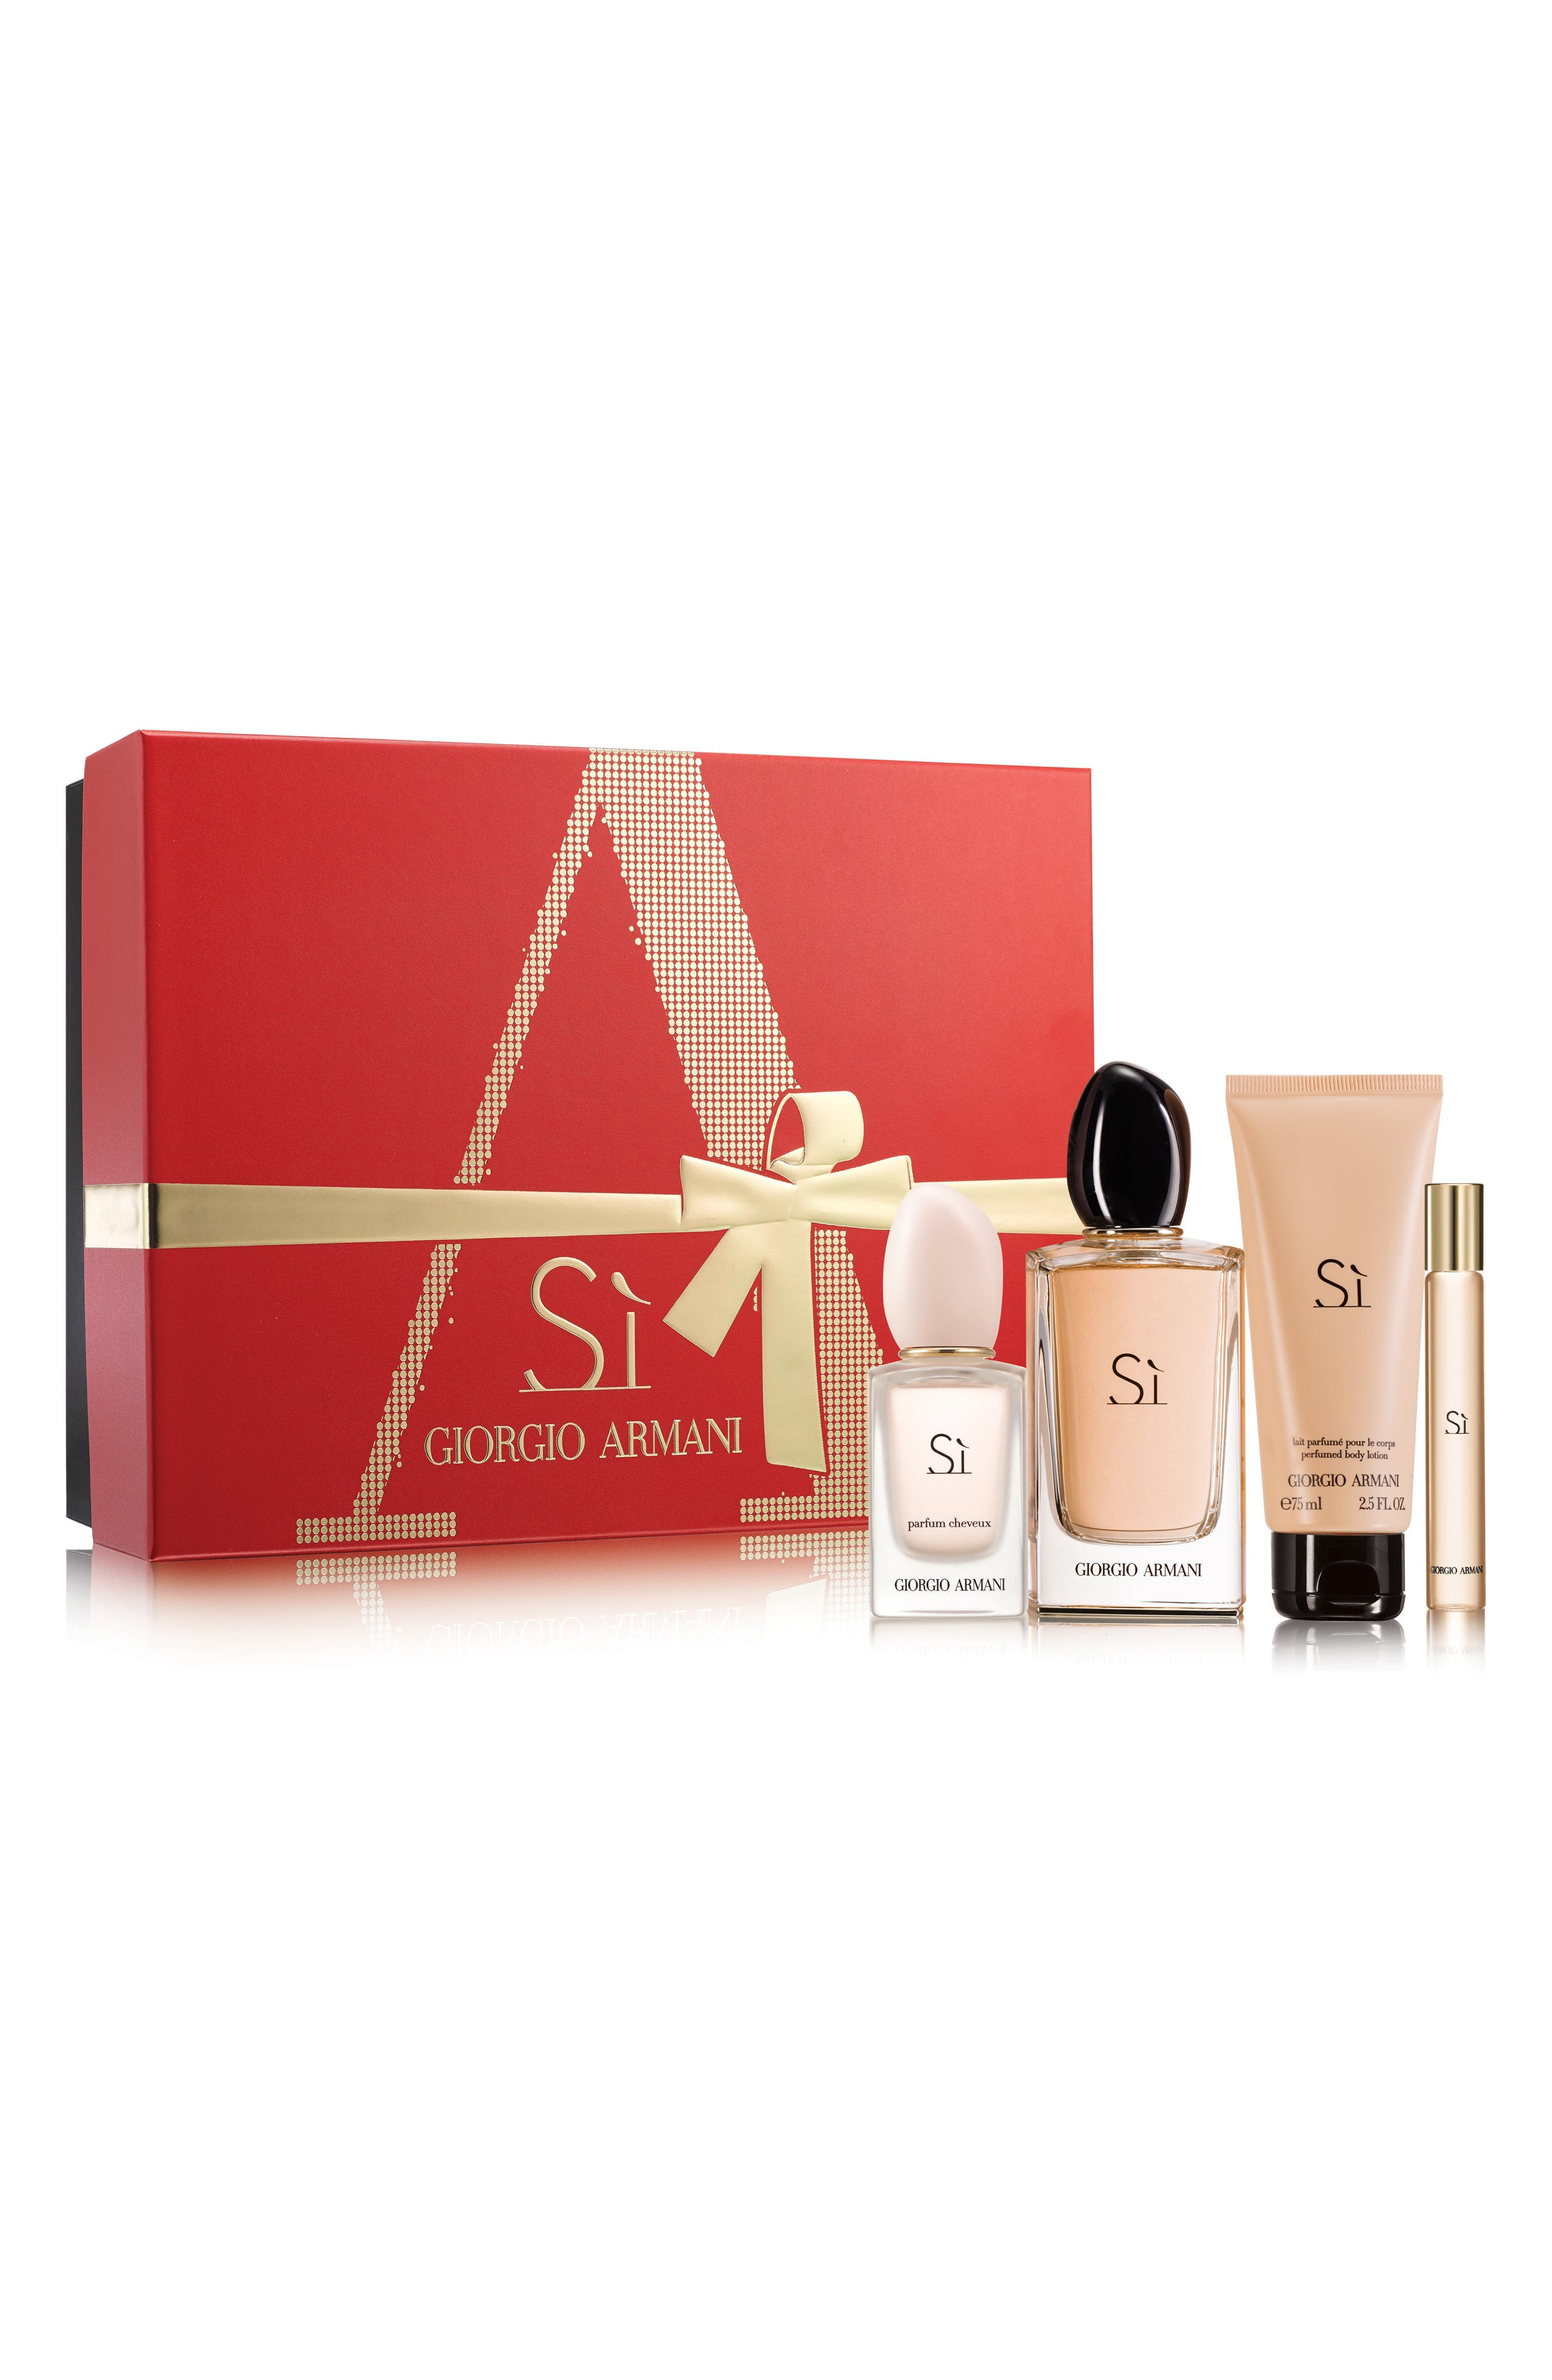 Giorgio Armani Si Set ($212 Value)